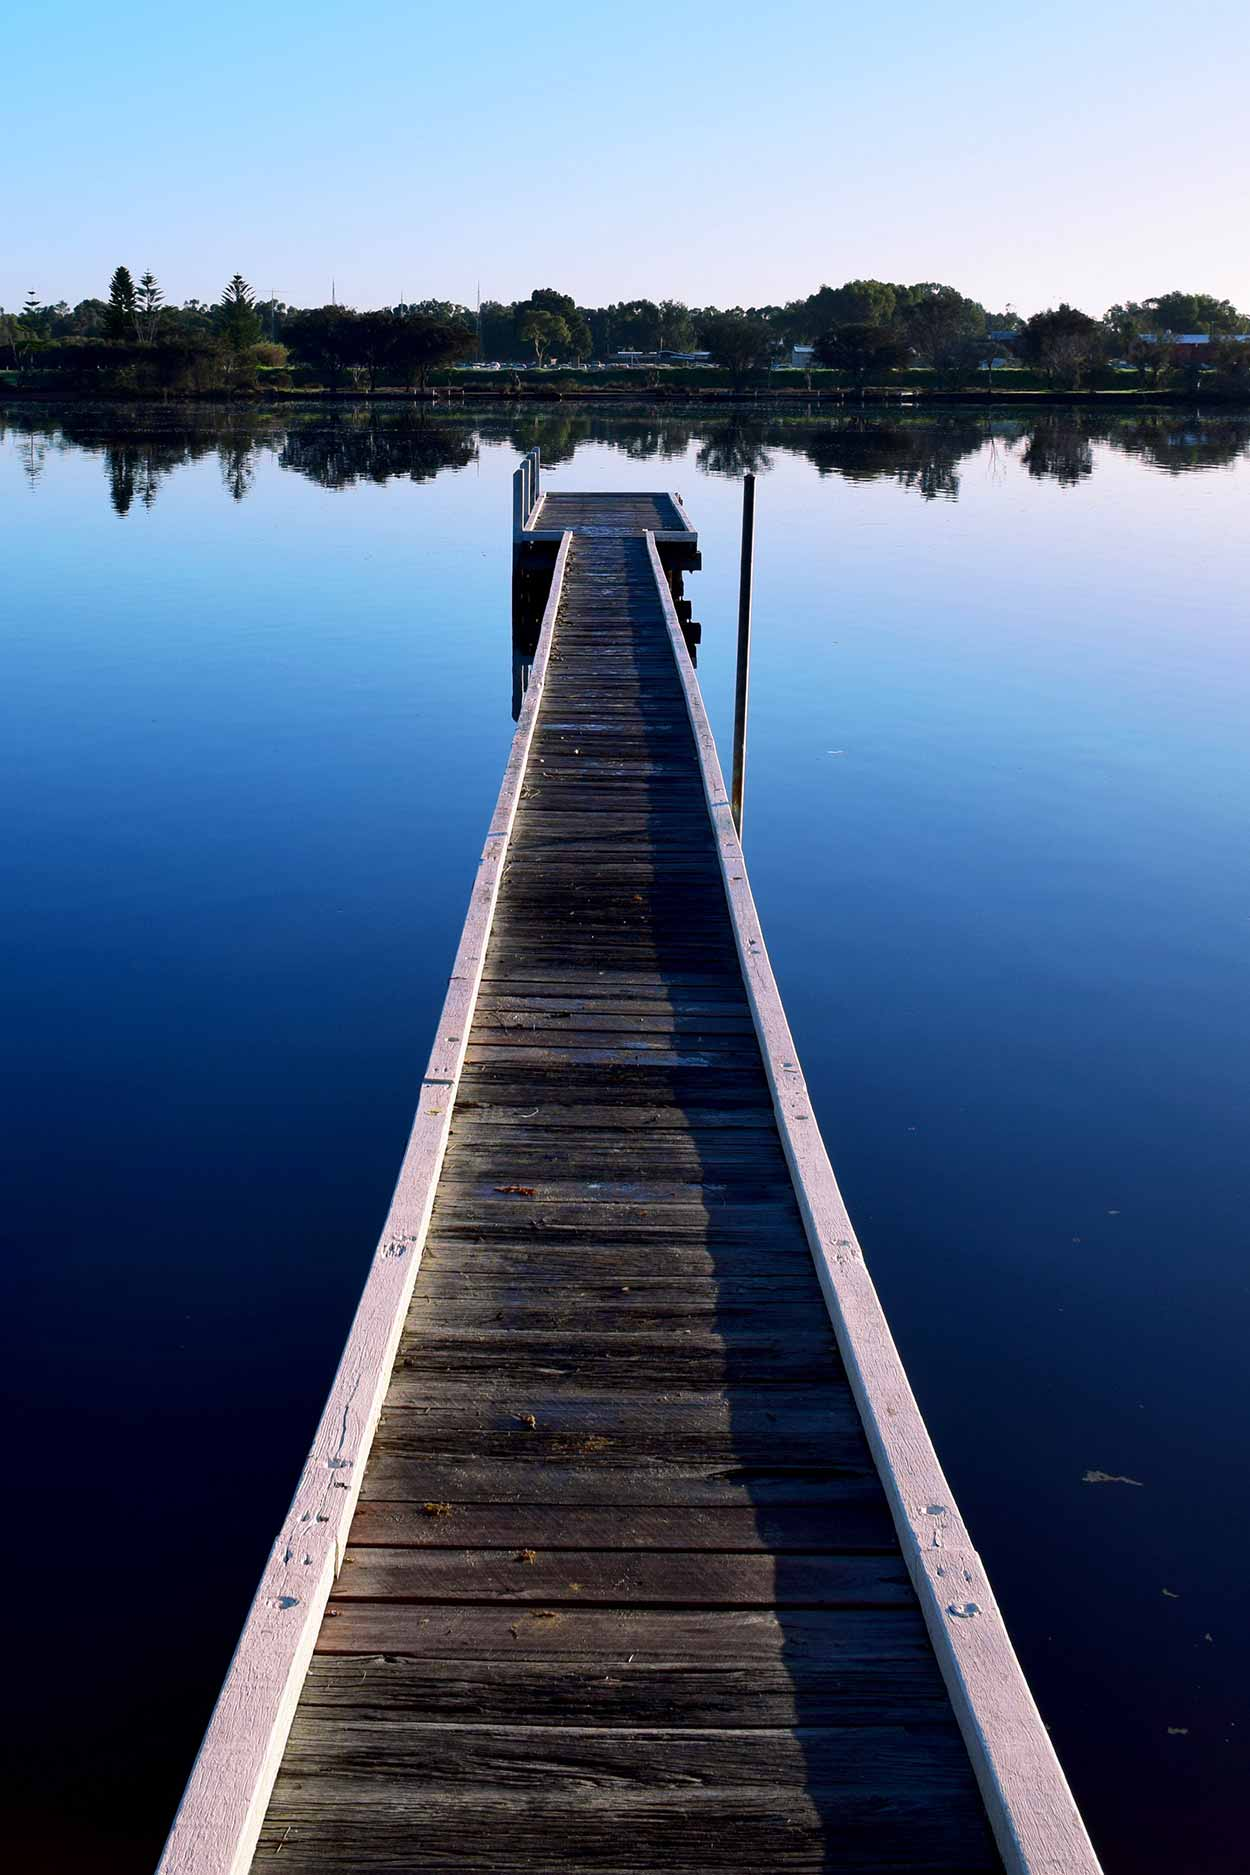 The Cracknell Park jetty on the Rivervale bank of the Swan River, Perth, Western Australia